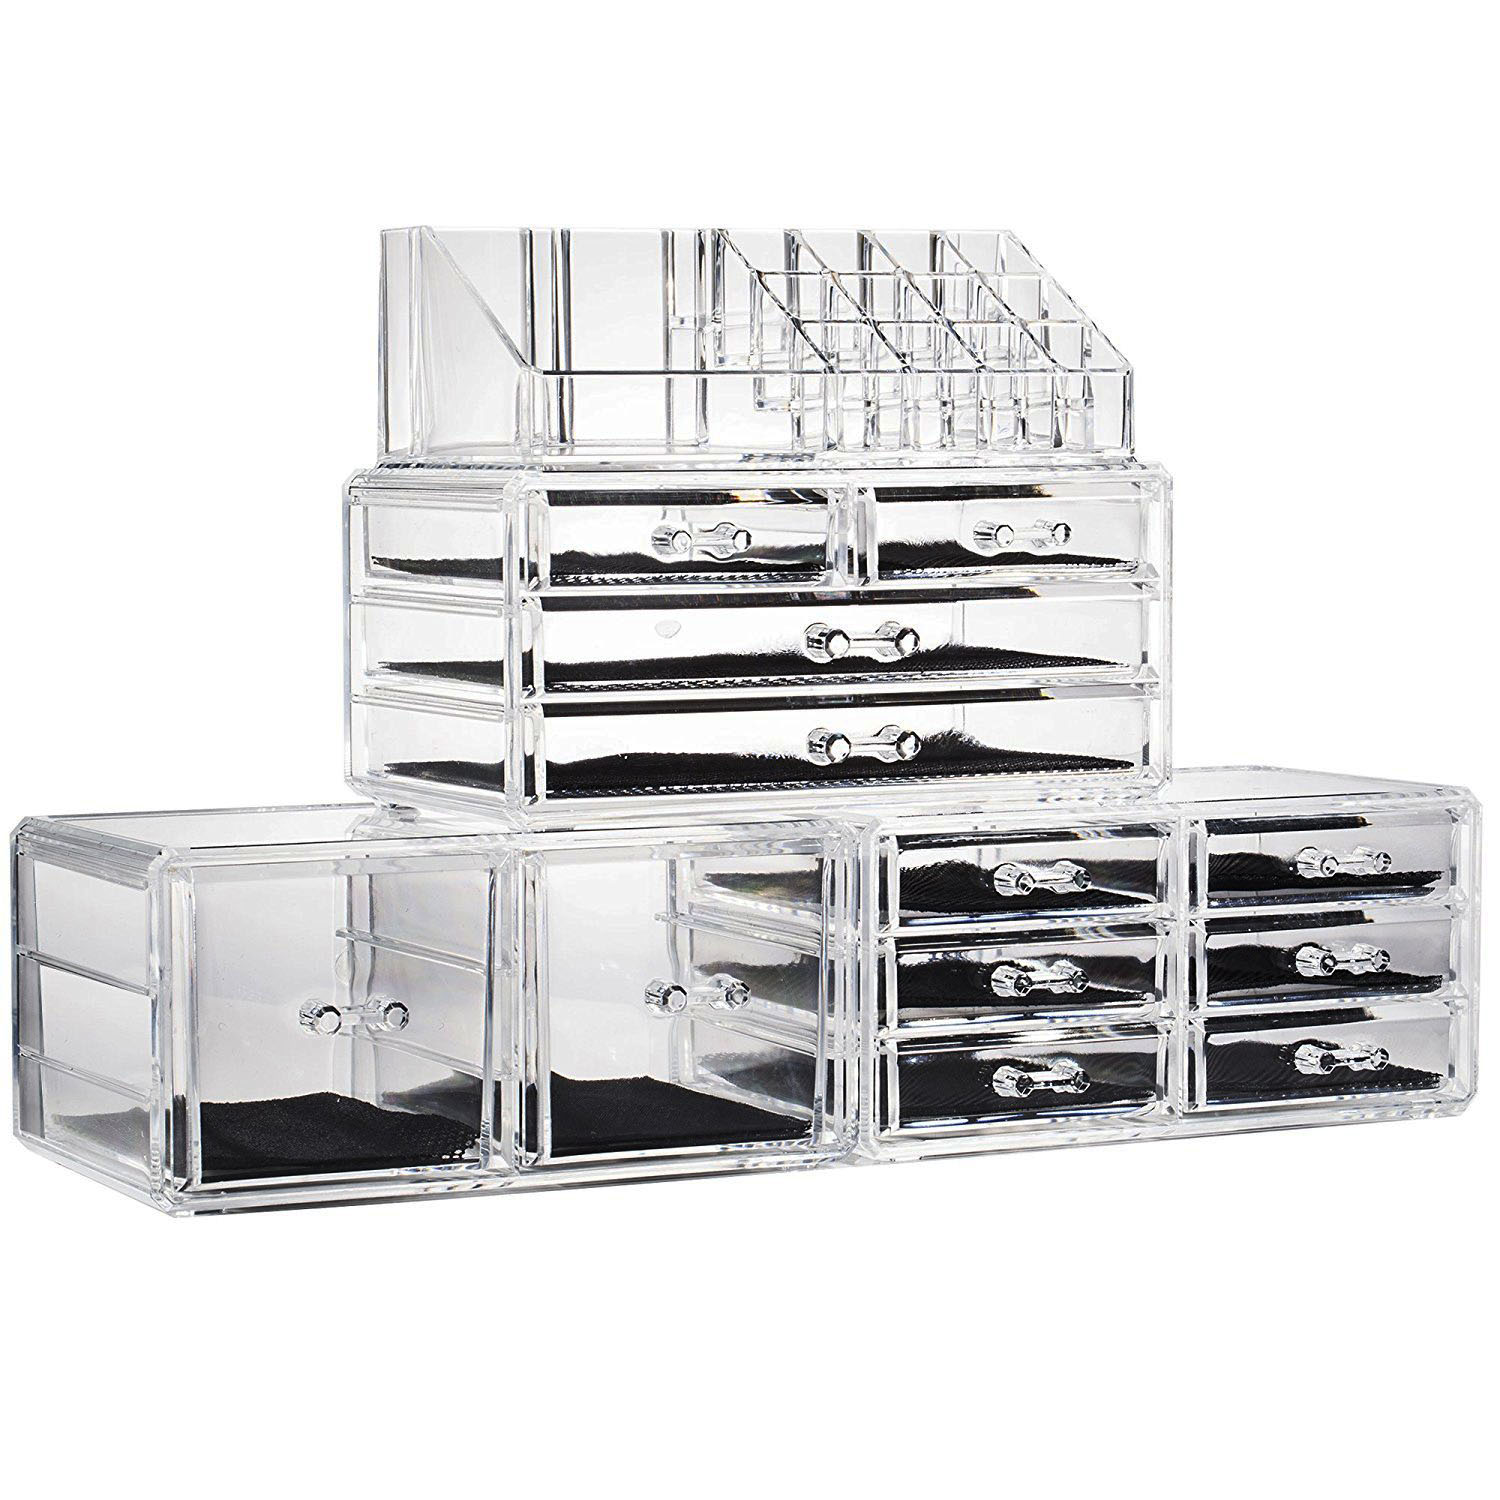 cdba1cc33ec8 Details about 12 Containers Drawers Makeup Organizer Jewelry Storage  Acrylic Case Box